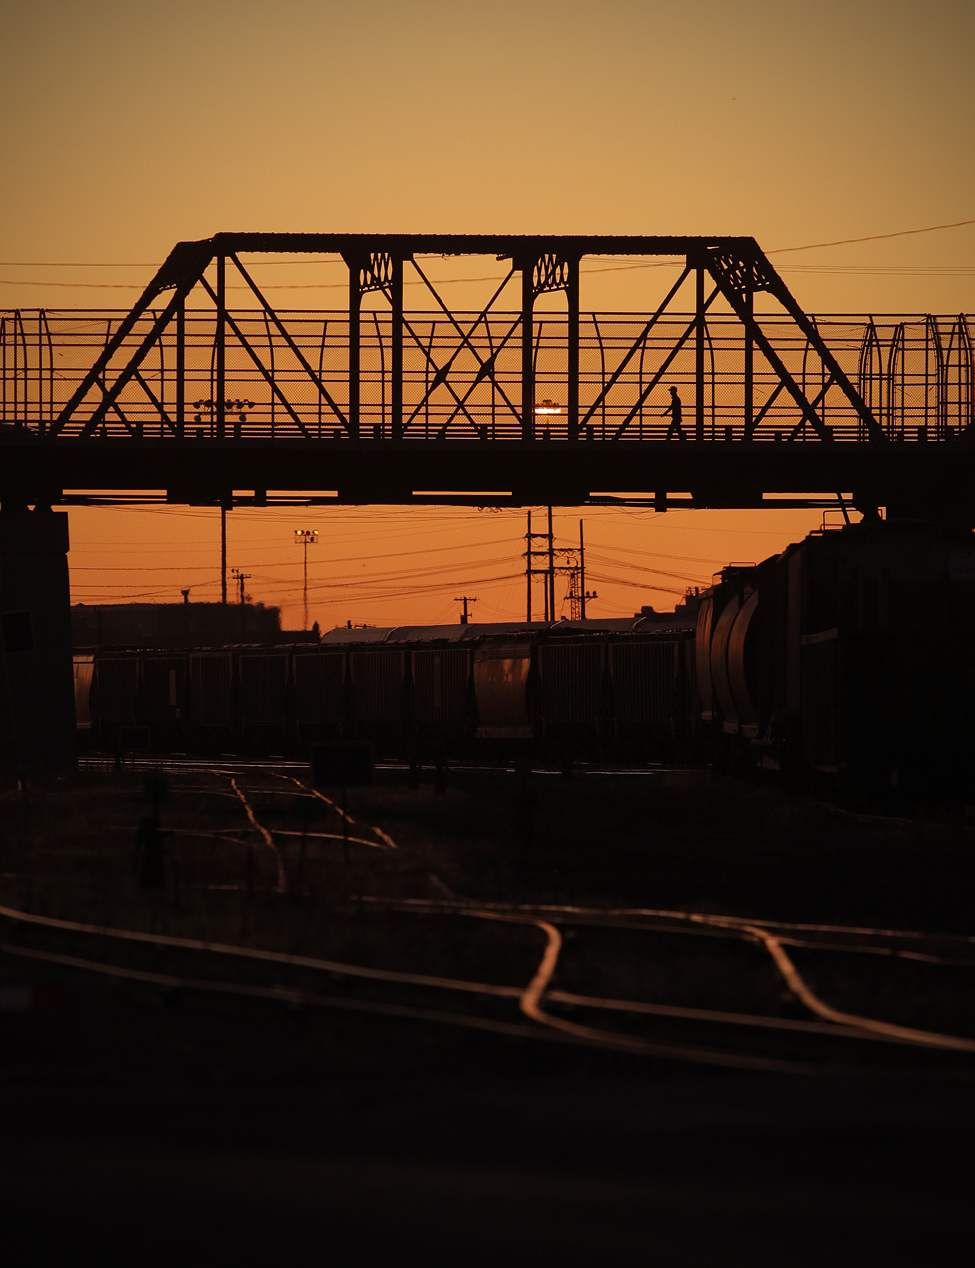 A pedestrian crosses the Arlington bridge during a sunset. July 30, 2011